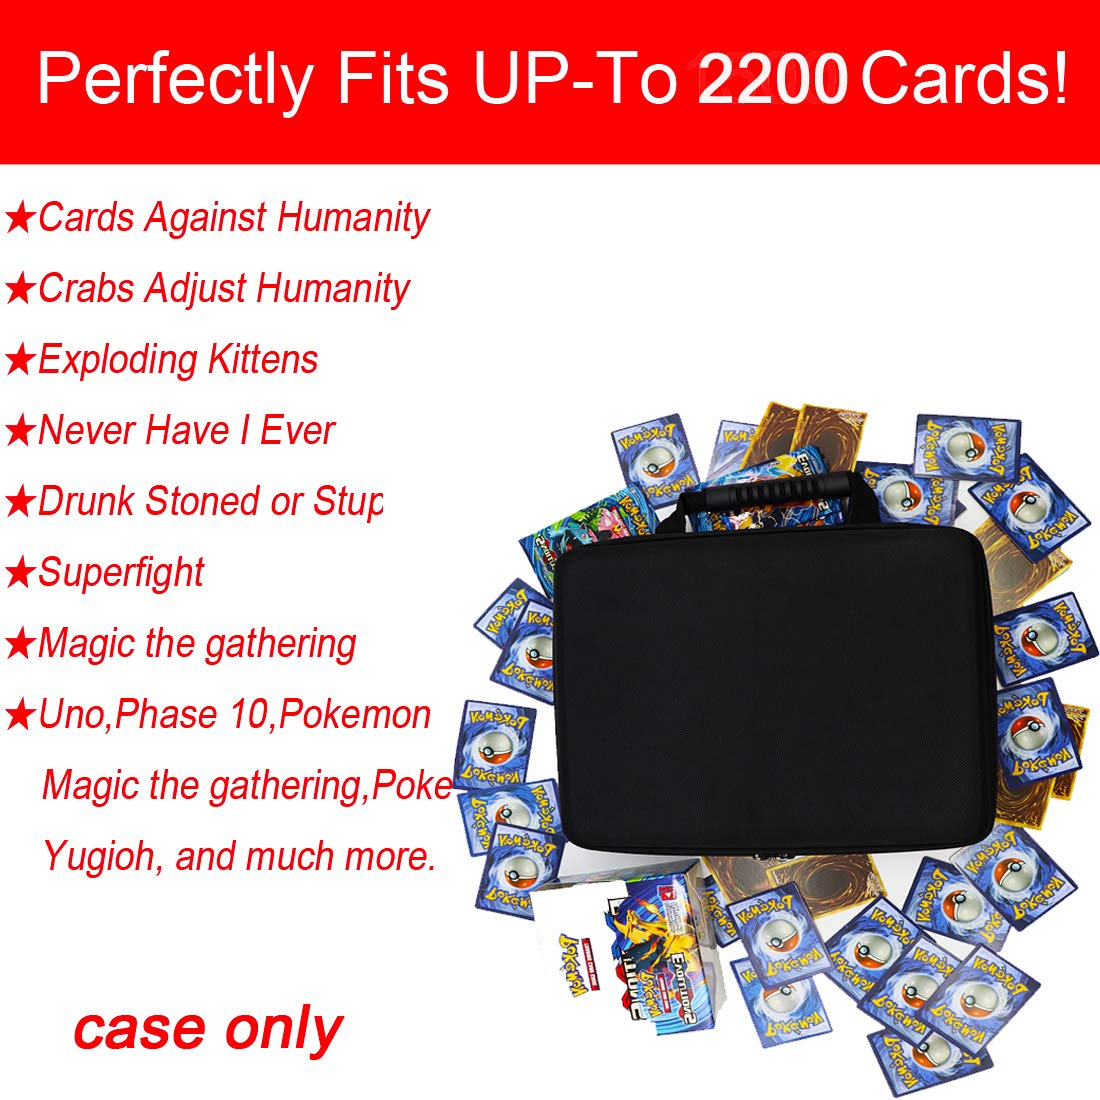 Card Games and All Other Card Game Extensions /… Big Trend Ultra-Large Capacity Hard Game Card Holder can Hold More Than 2,200 Cards C Black H Card Games Suitable for Major Card Games A